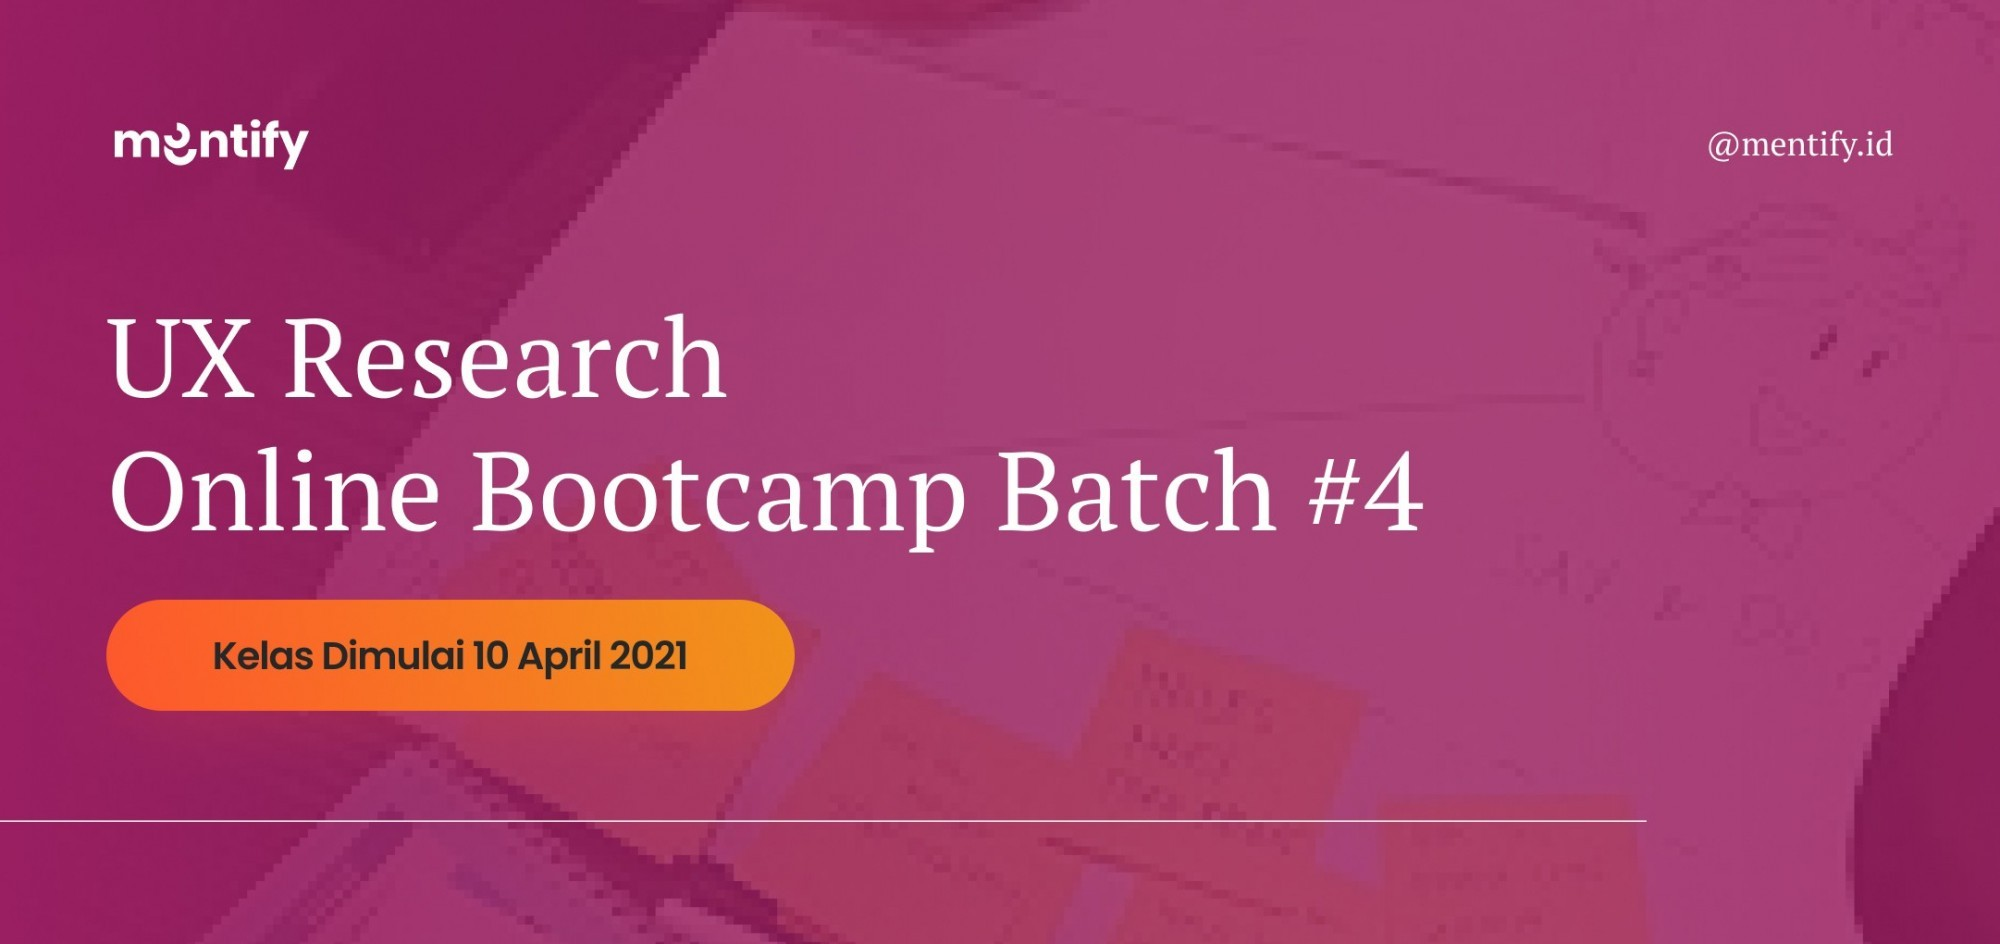 Mentify Batch #4:UX Research Online Bootcamp